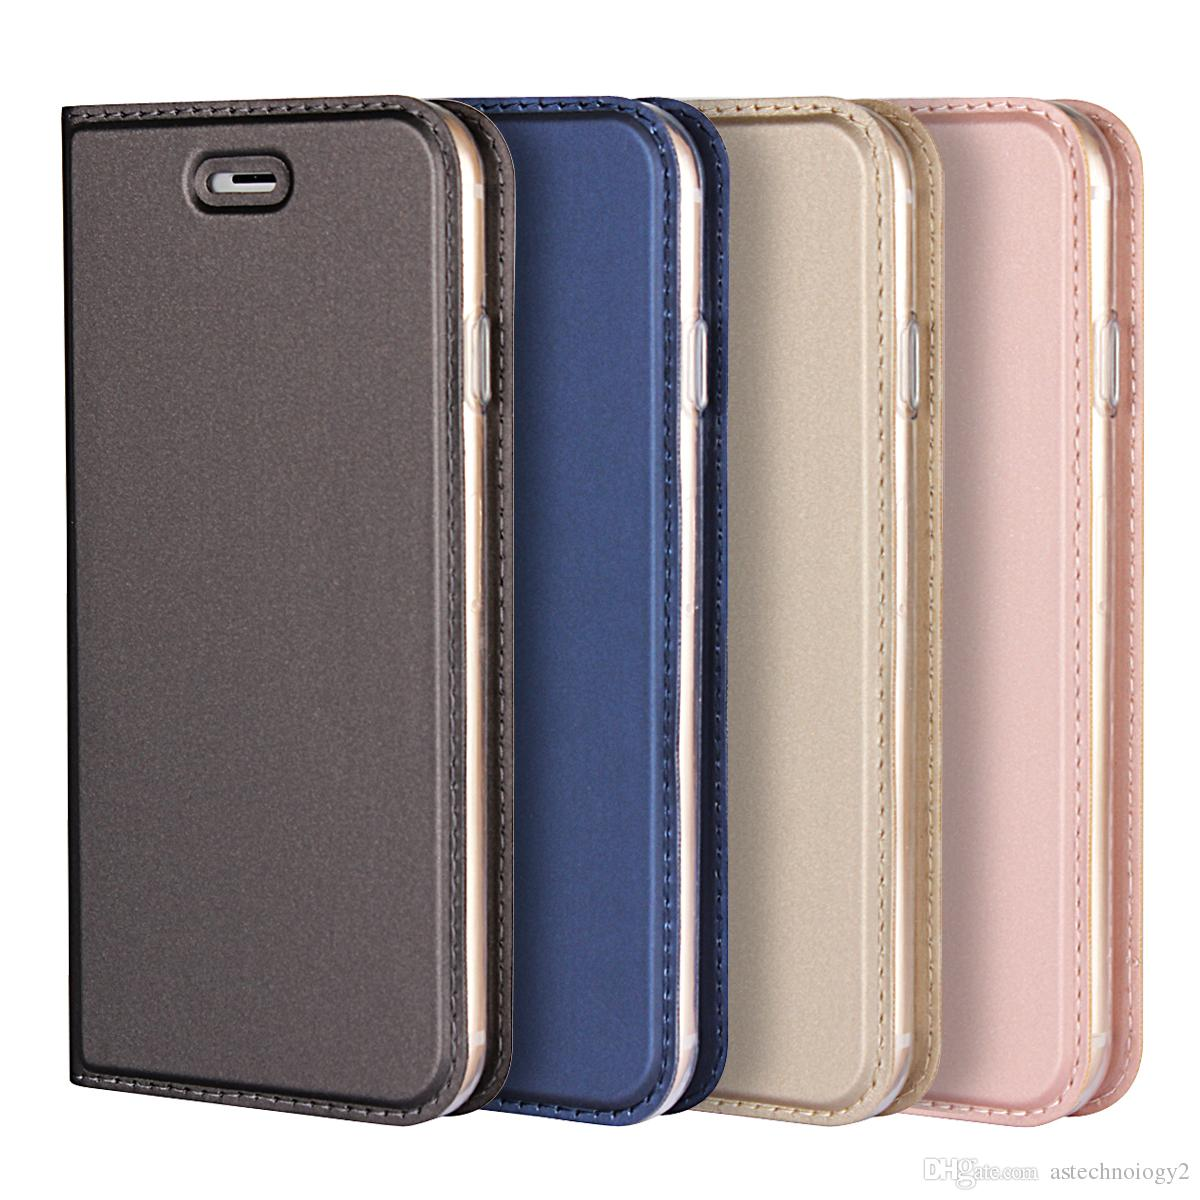 factory price 65e30 71111 Luxury Leather Case For Samsung Galaxy S8 PLUS Cell Phone Case Slim Wallet  Credit Card Slot Stand Cover Retail Packages For Iphone 7 Plus Cell Phone  ...